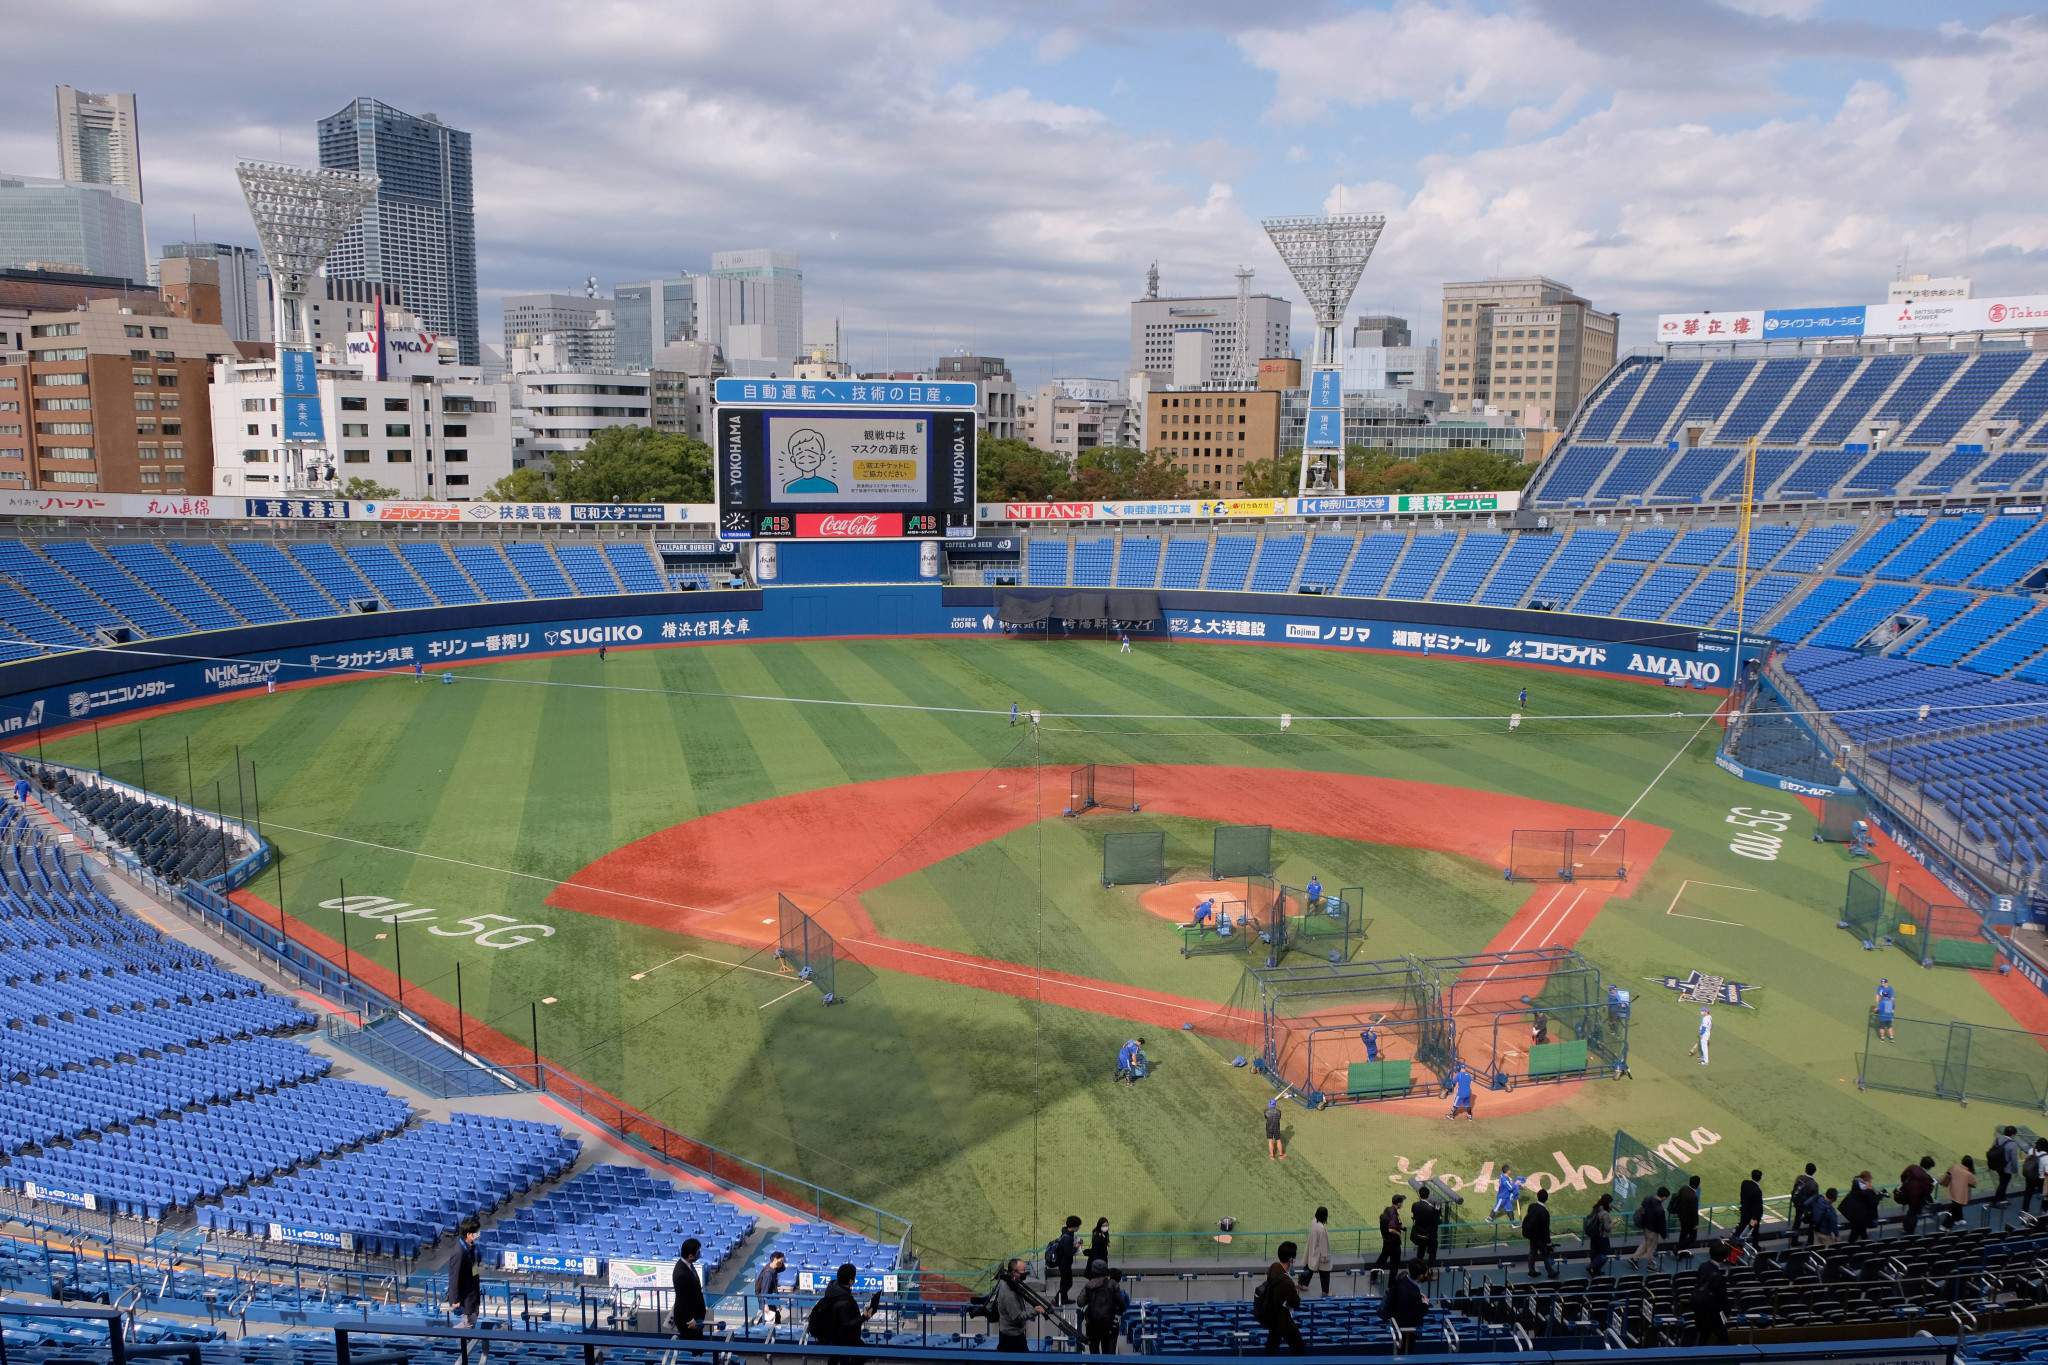 Six countries will compete for the gold medal at Yokohama Stadium ©Getty Images